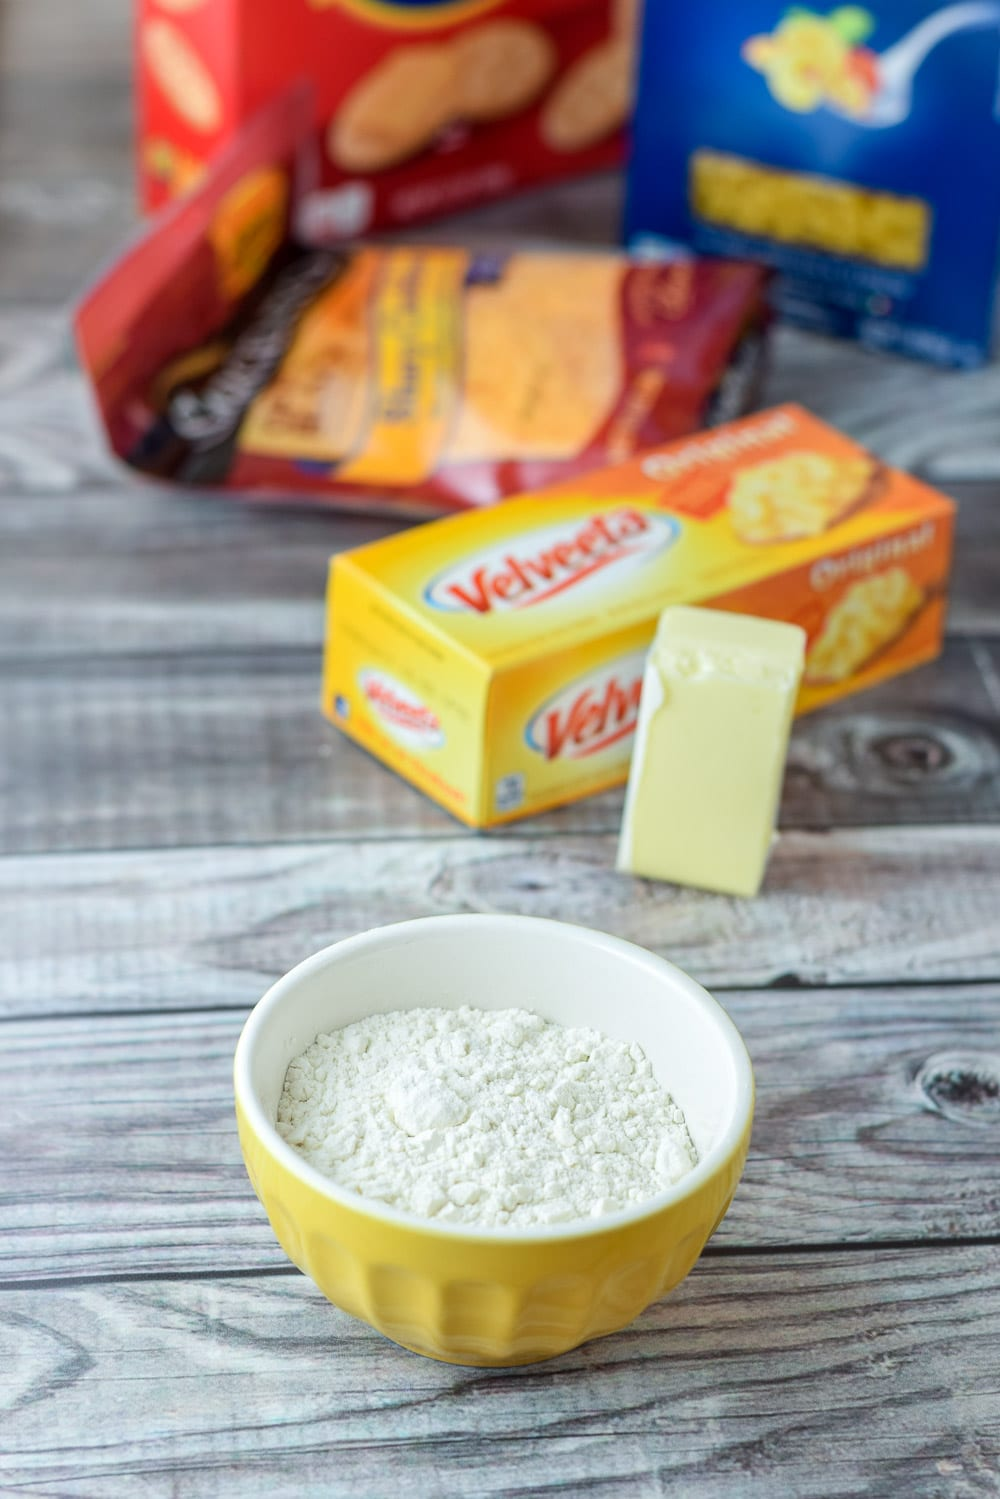 Flour, butter, Velveeta, cheddar cheese, elbow macaroni and Ritz crackers on a grey wooden table